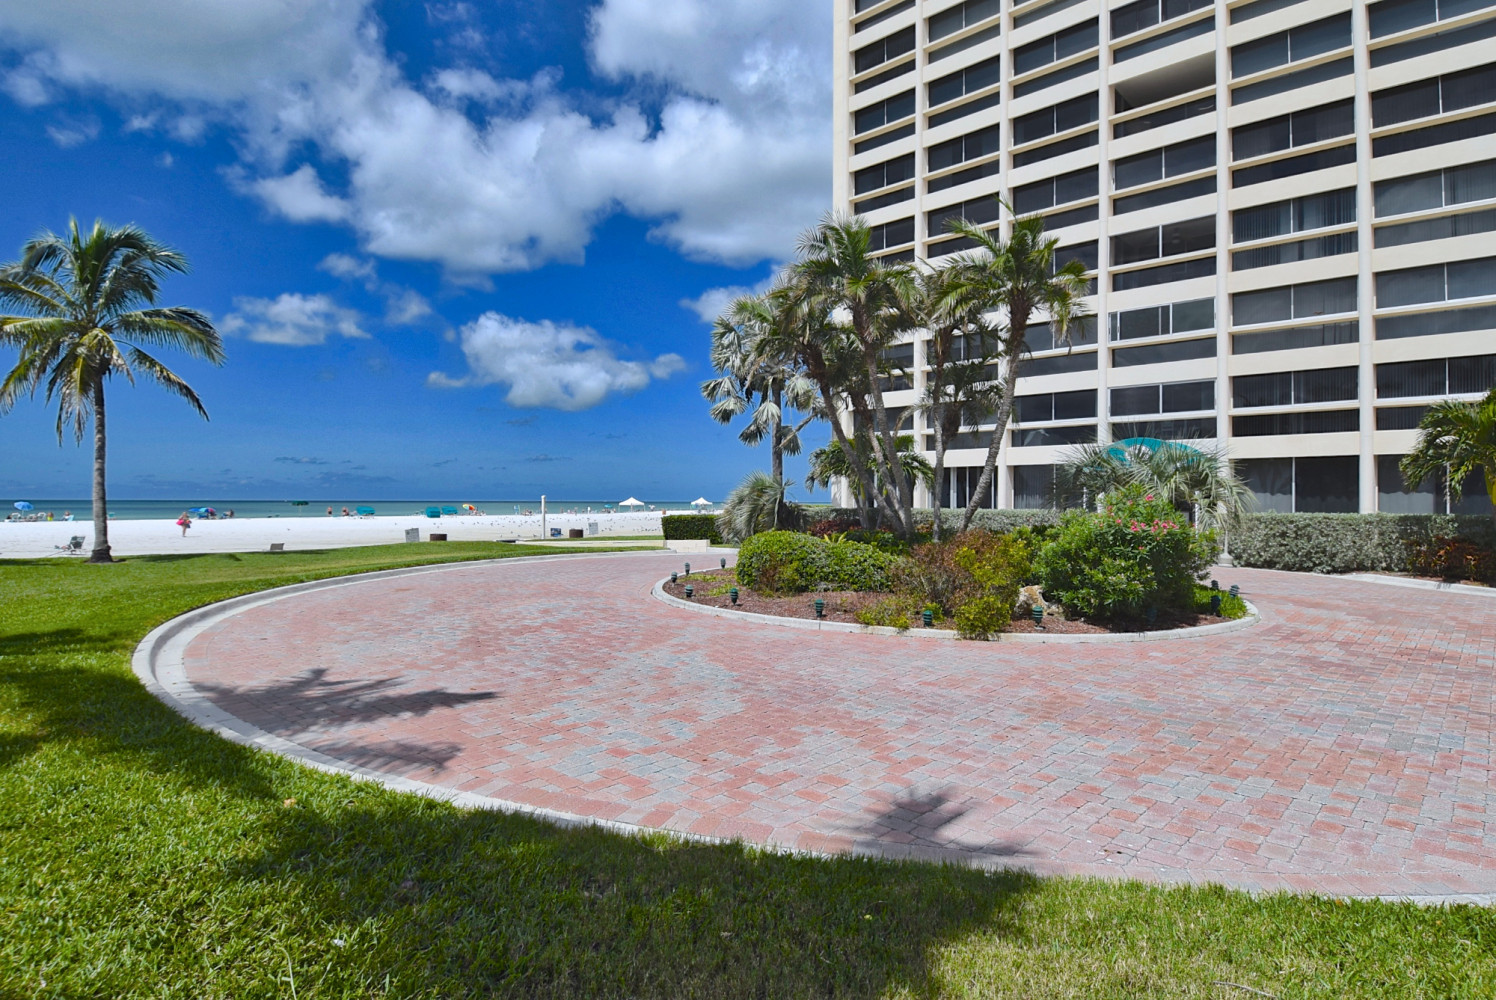 G 46 Deluxe 1 Bed 1 Bath Gulfside - Siesta Key Vacation Rentals